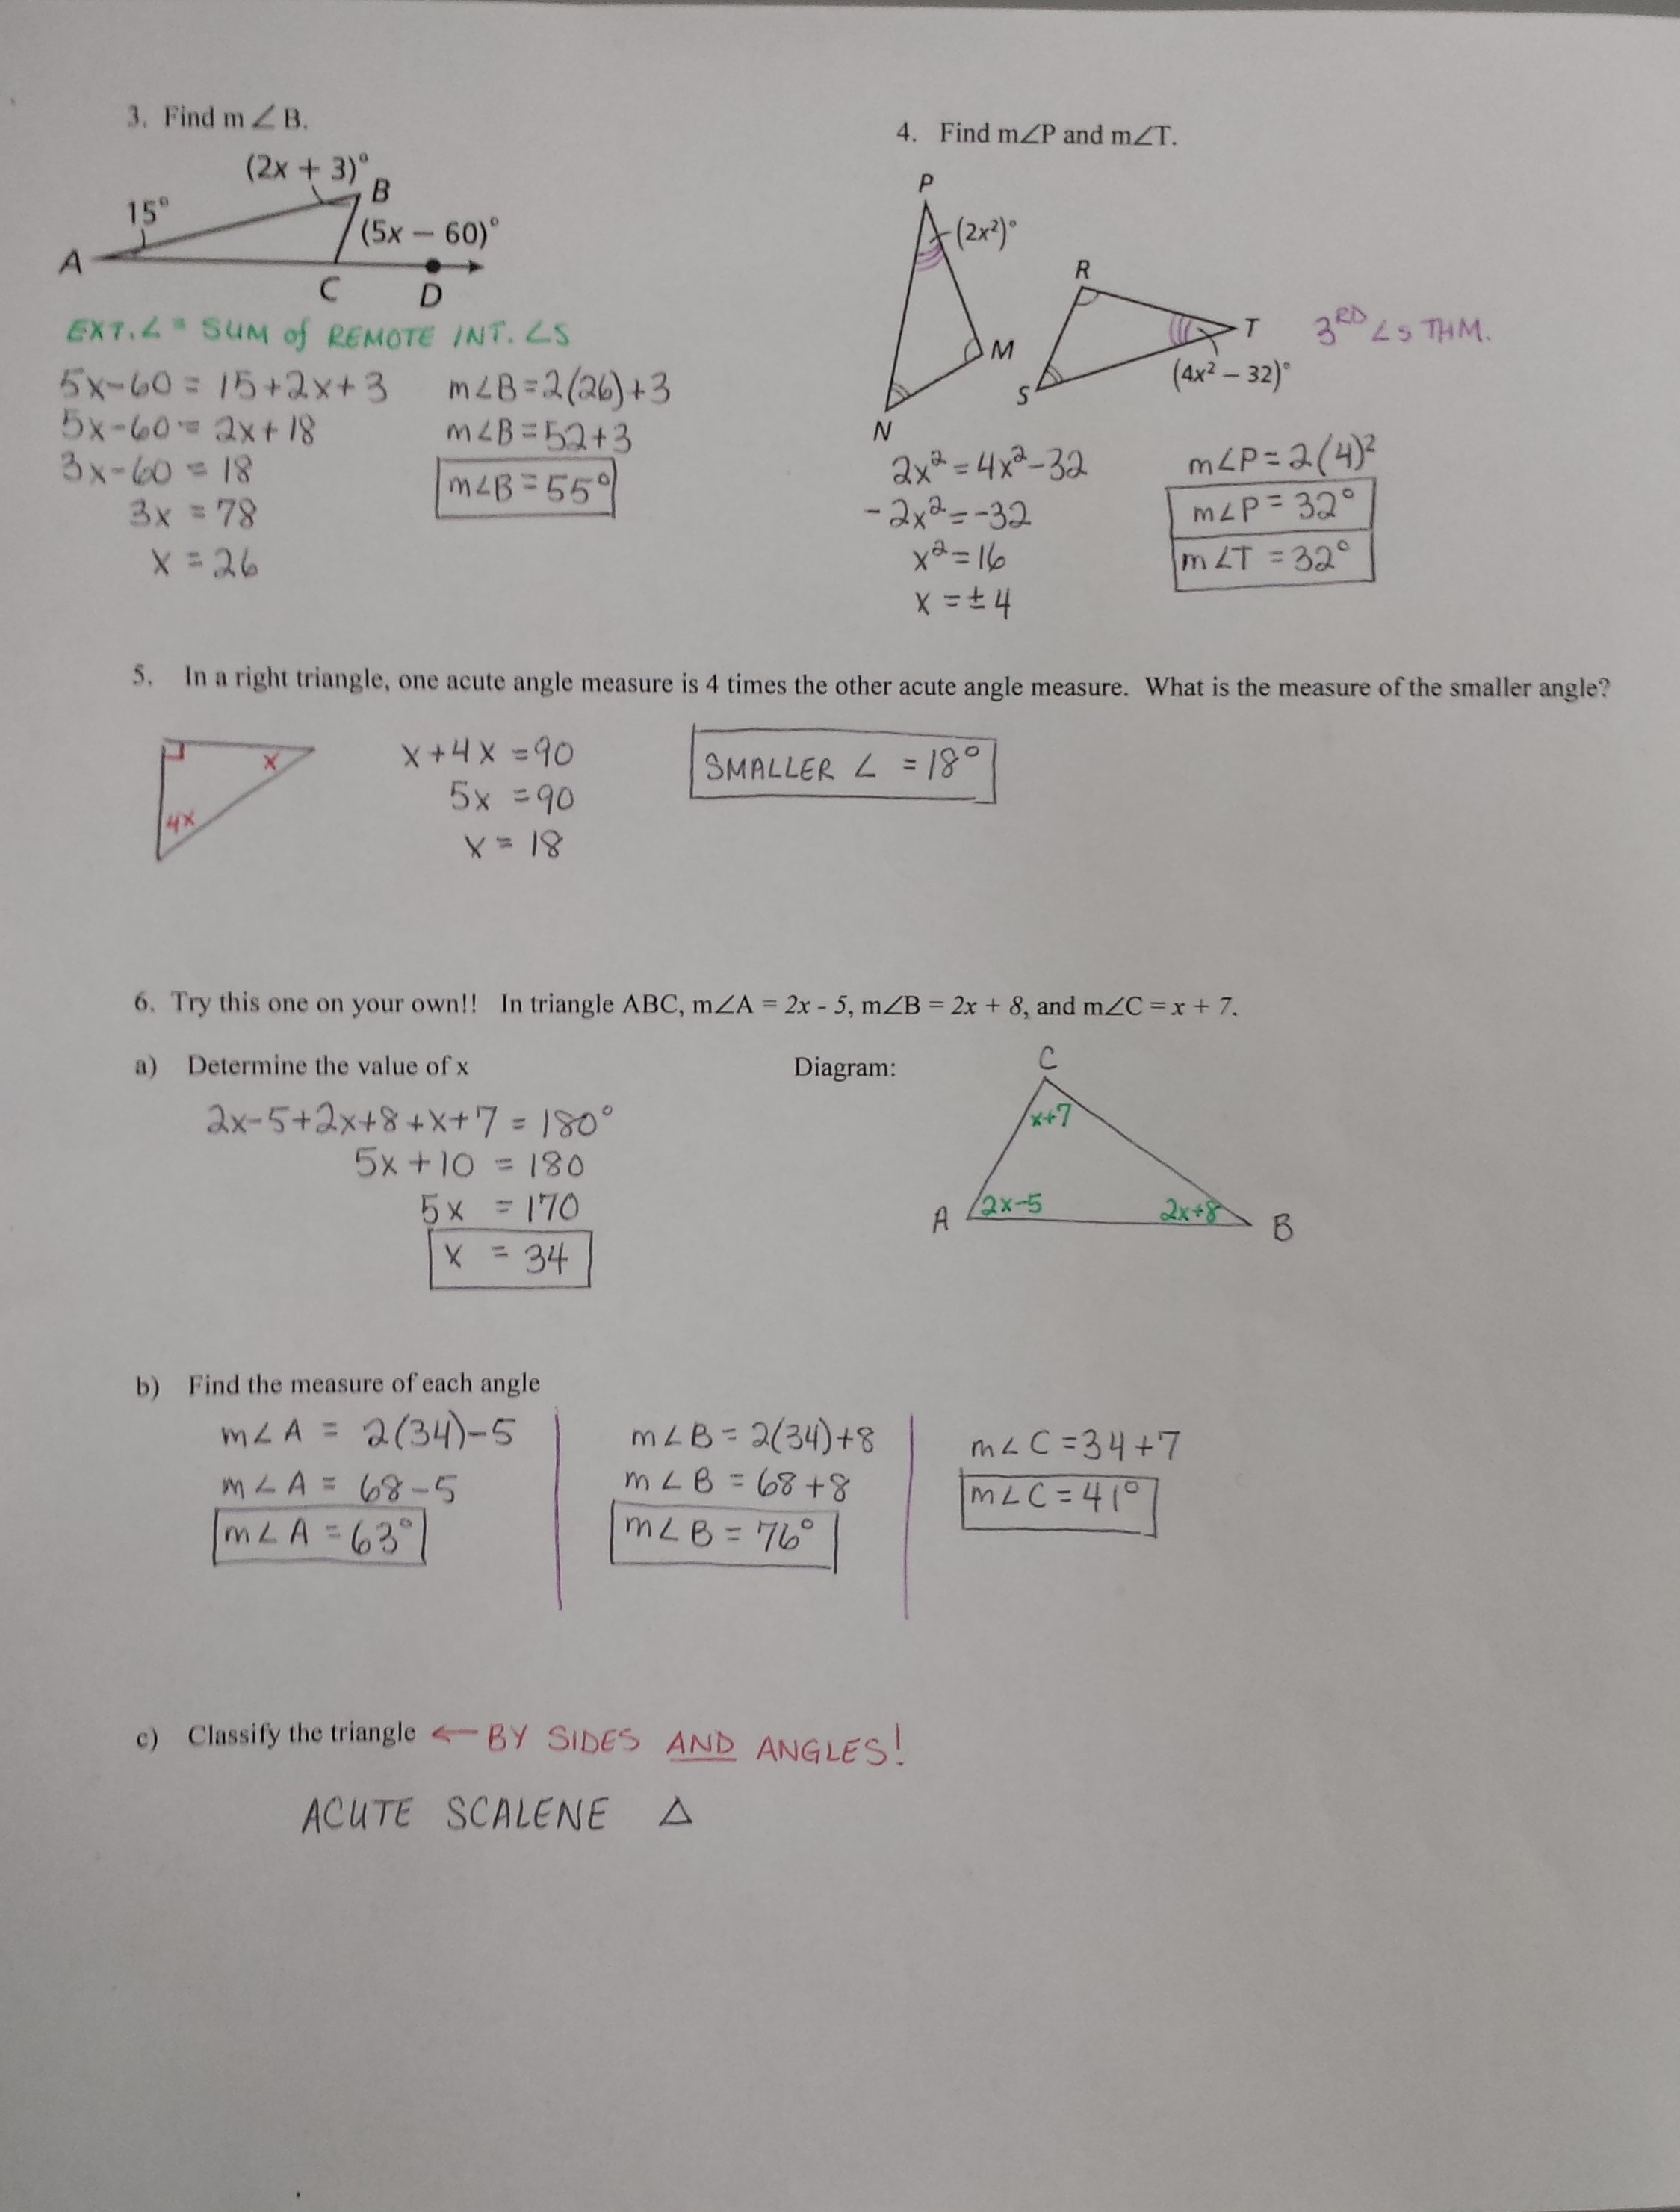 Course 2 Chapter 7 Geometric Figures Lesson 3 Homework Practice